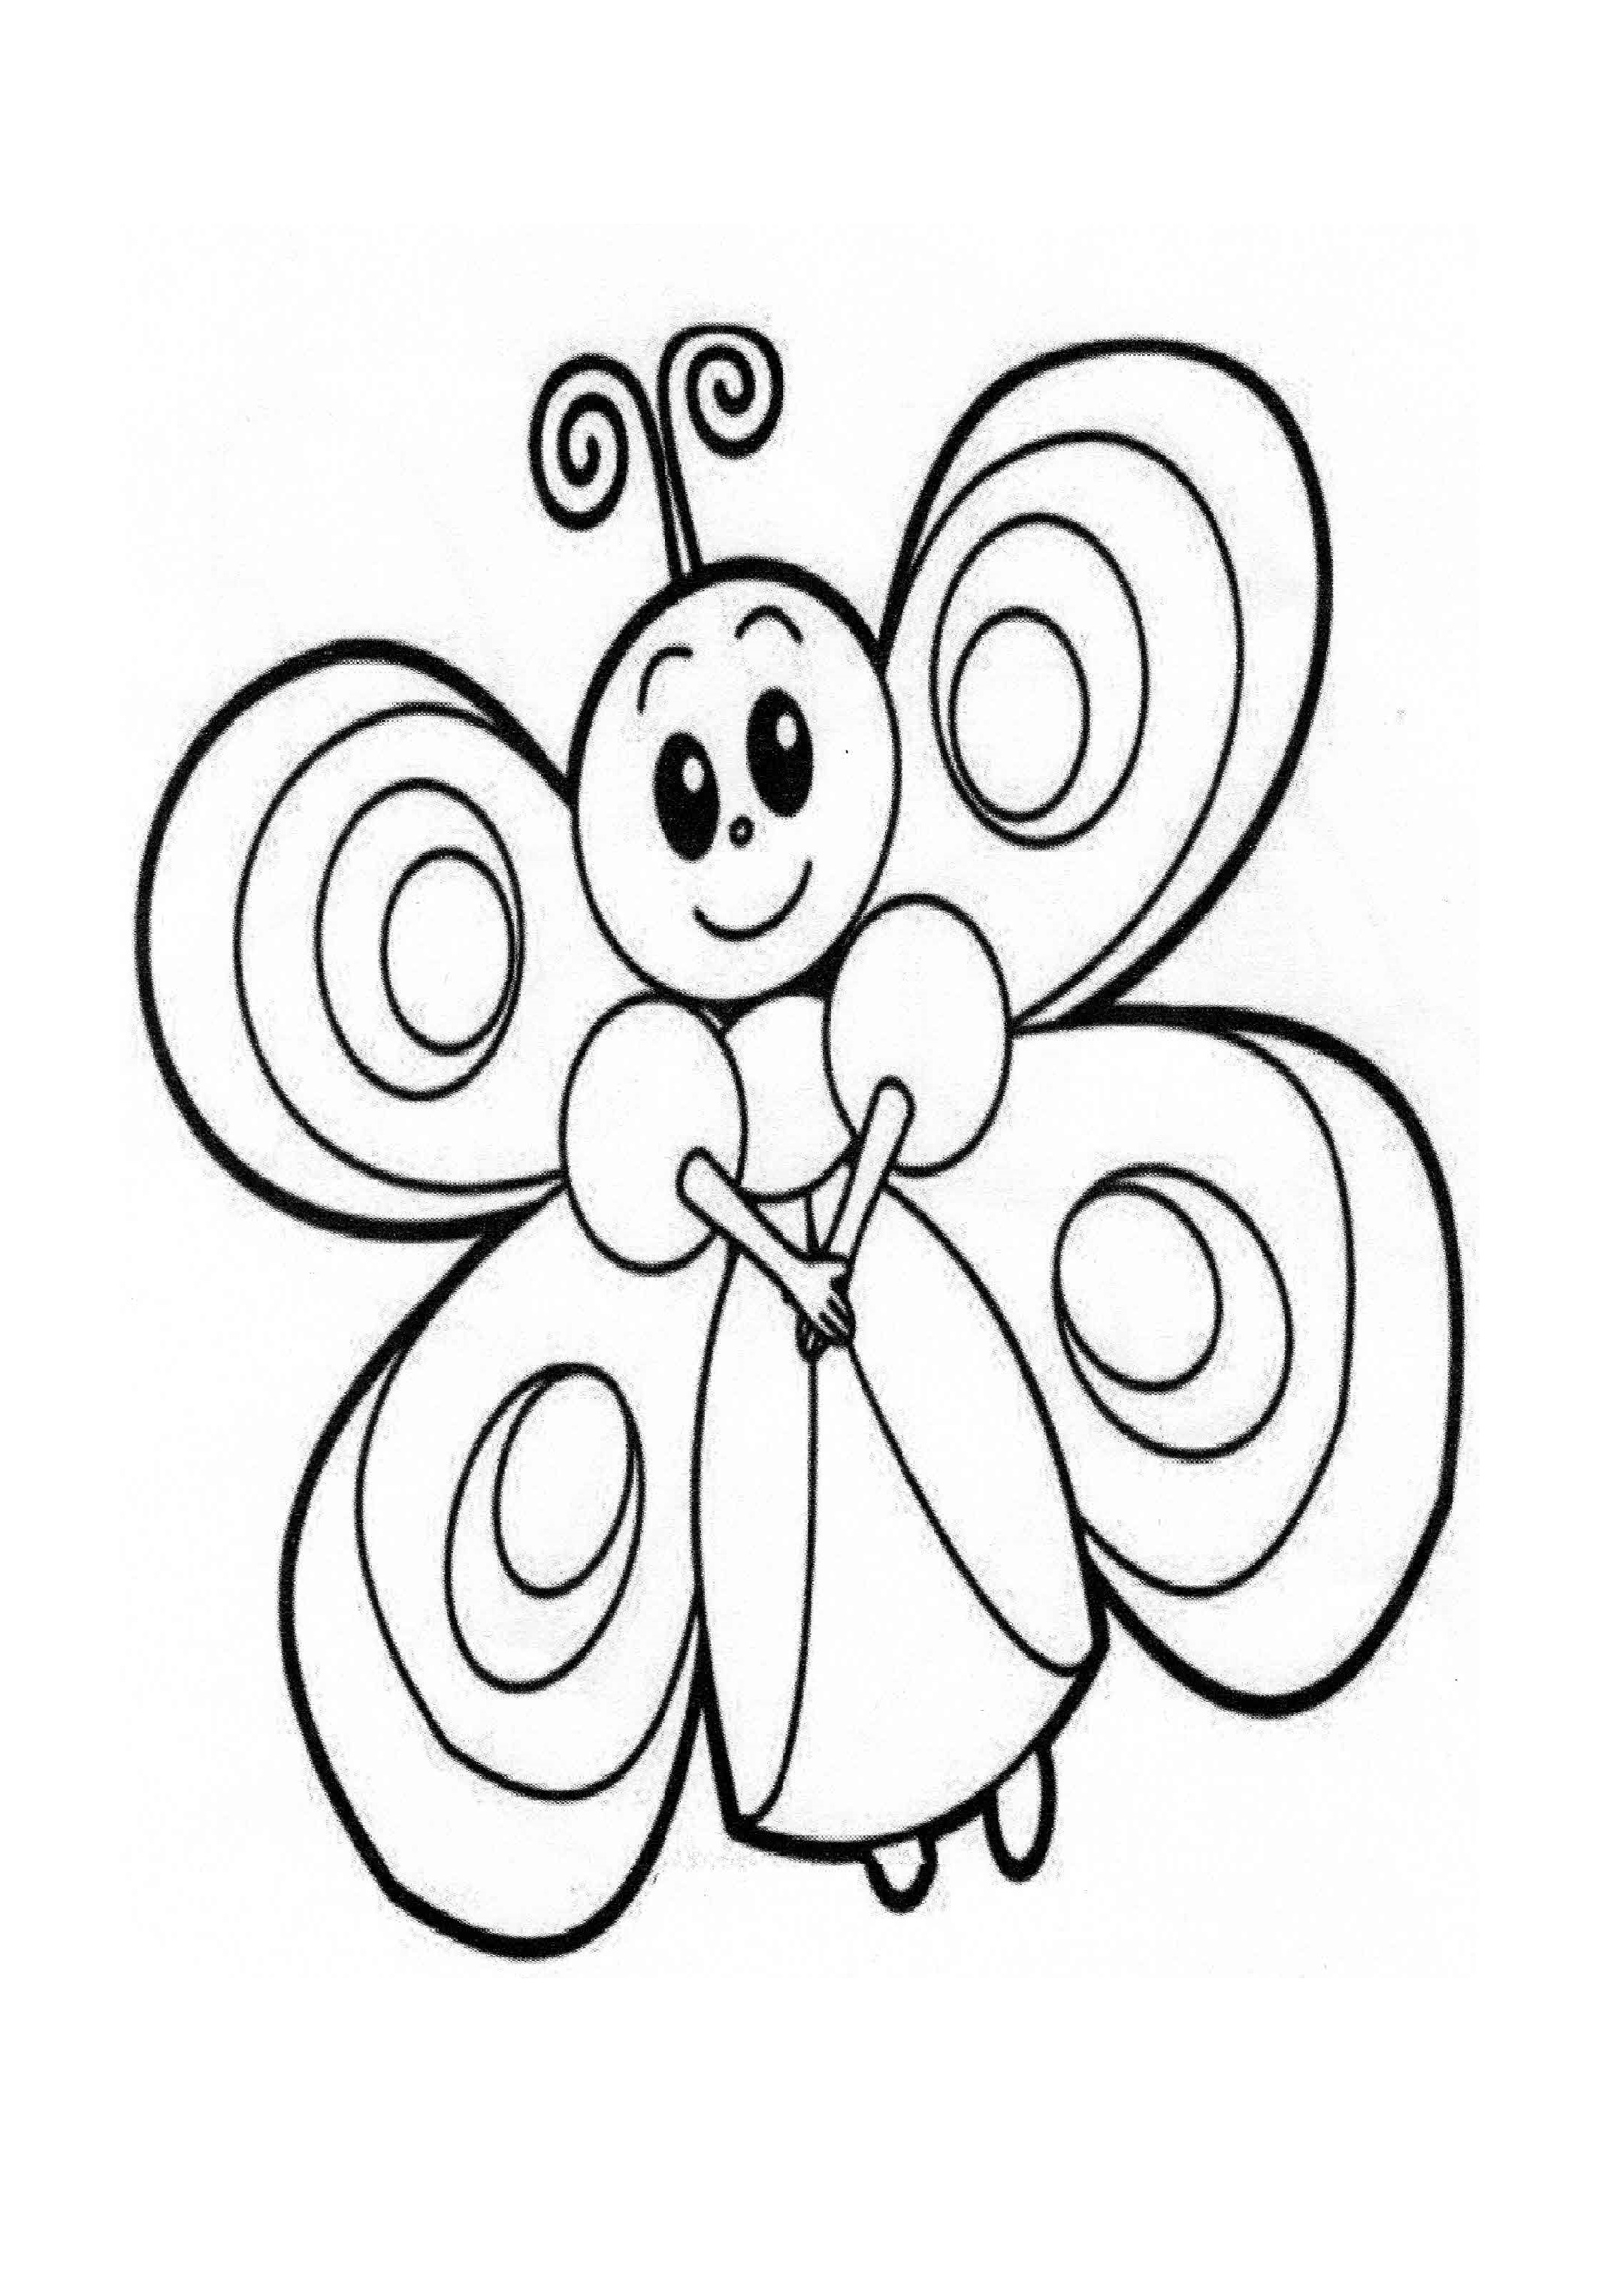 coloring pages with butterflies butterfly coloring page preschool and pages coloring with butterflies